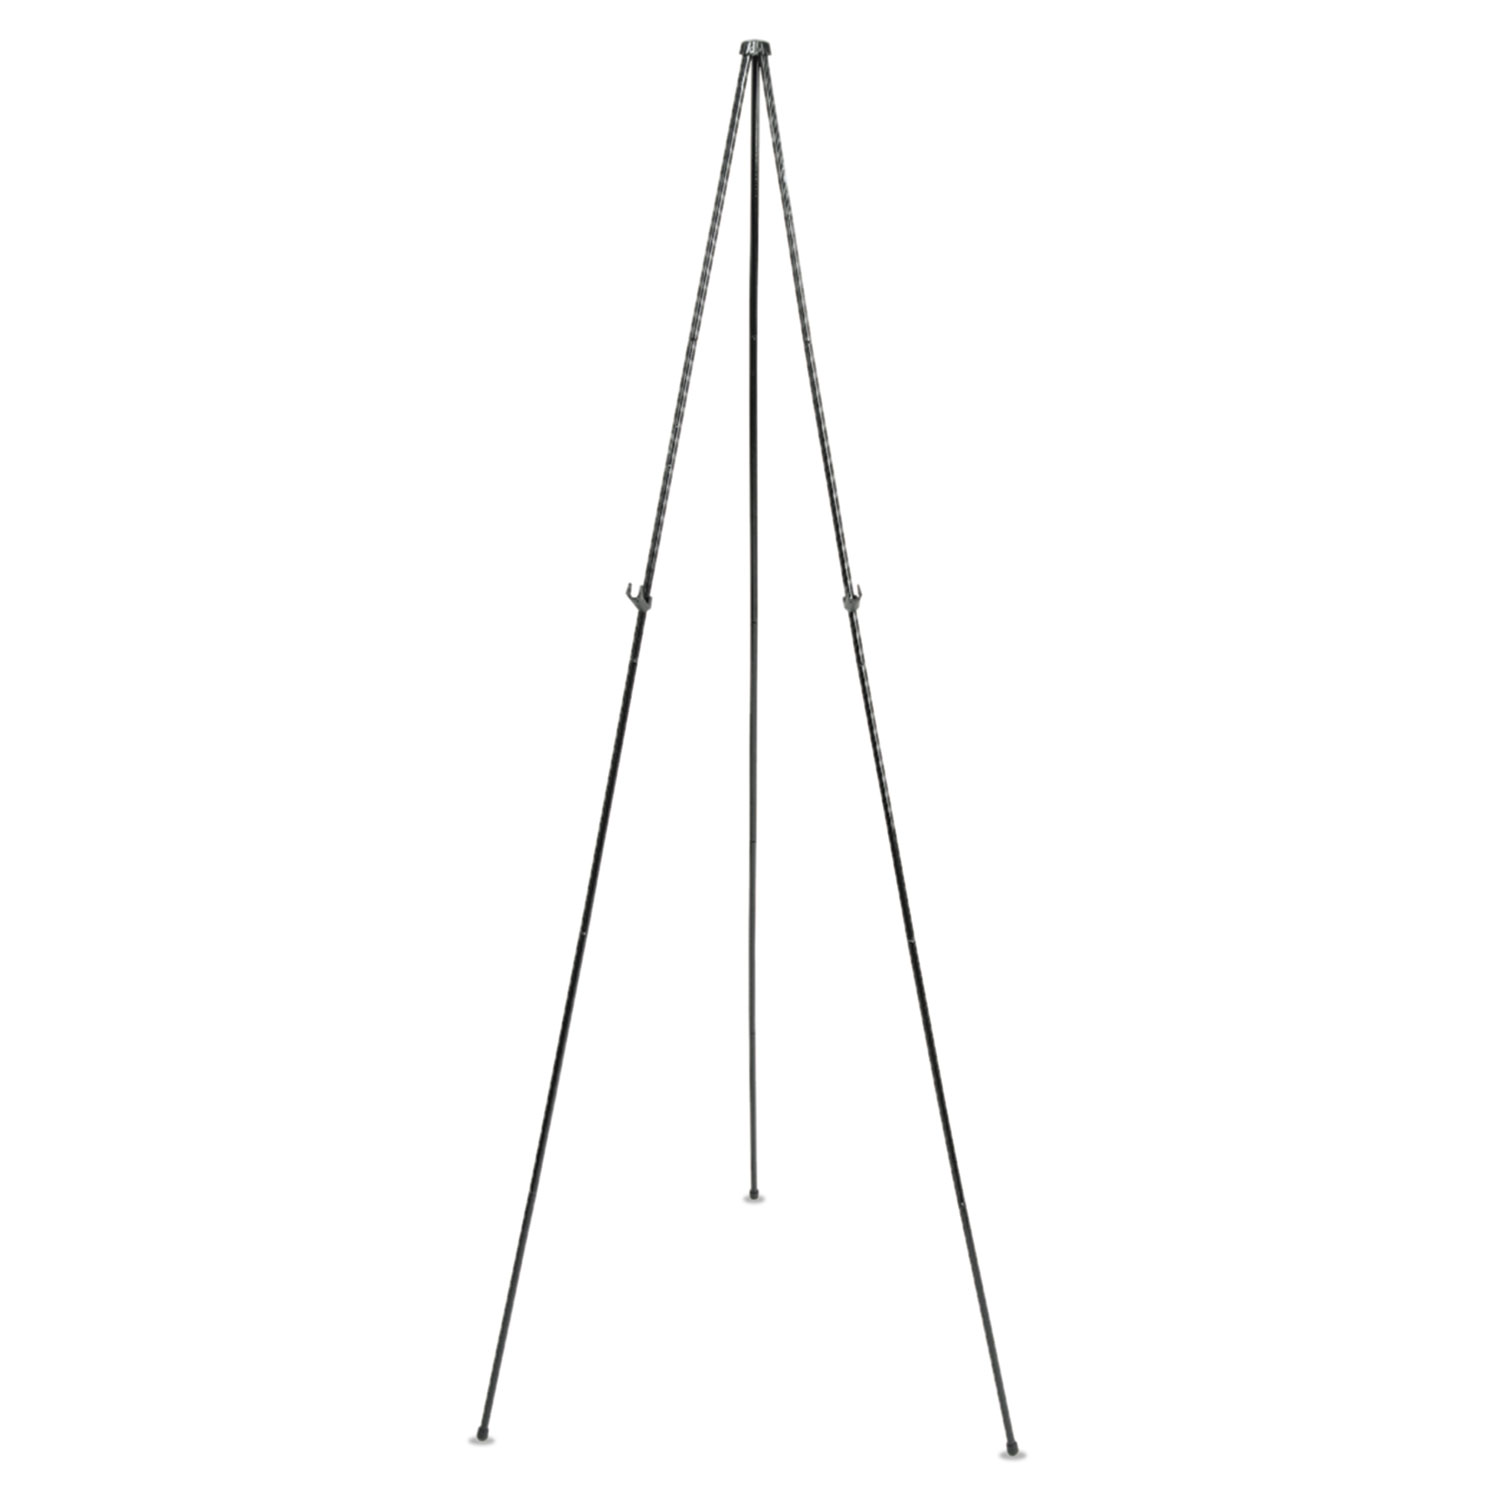 """Picture of Full Size Instant Easel, 62-3/8"""" Maximum Height, Steel, Black"""